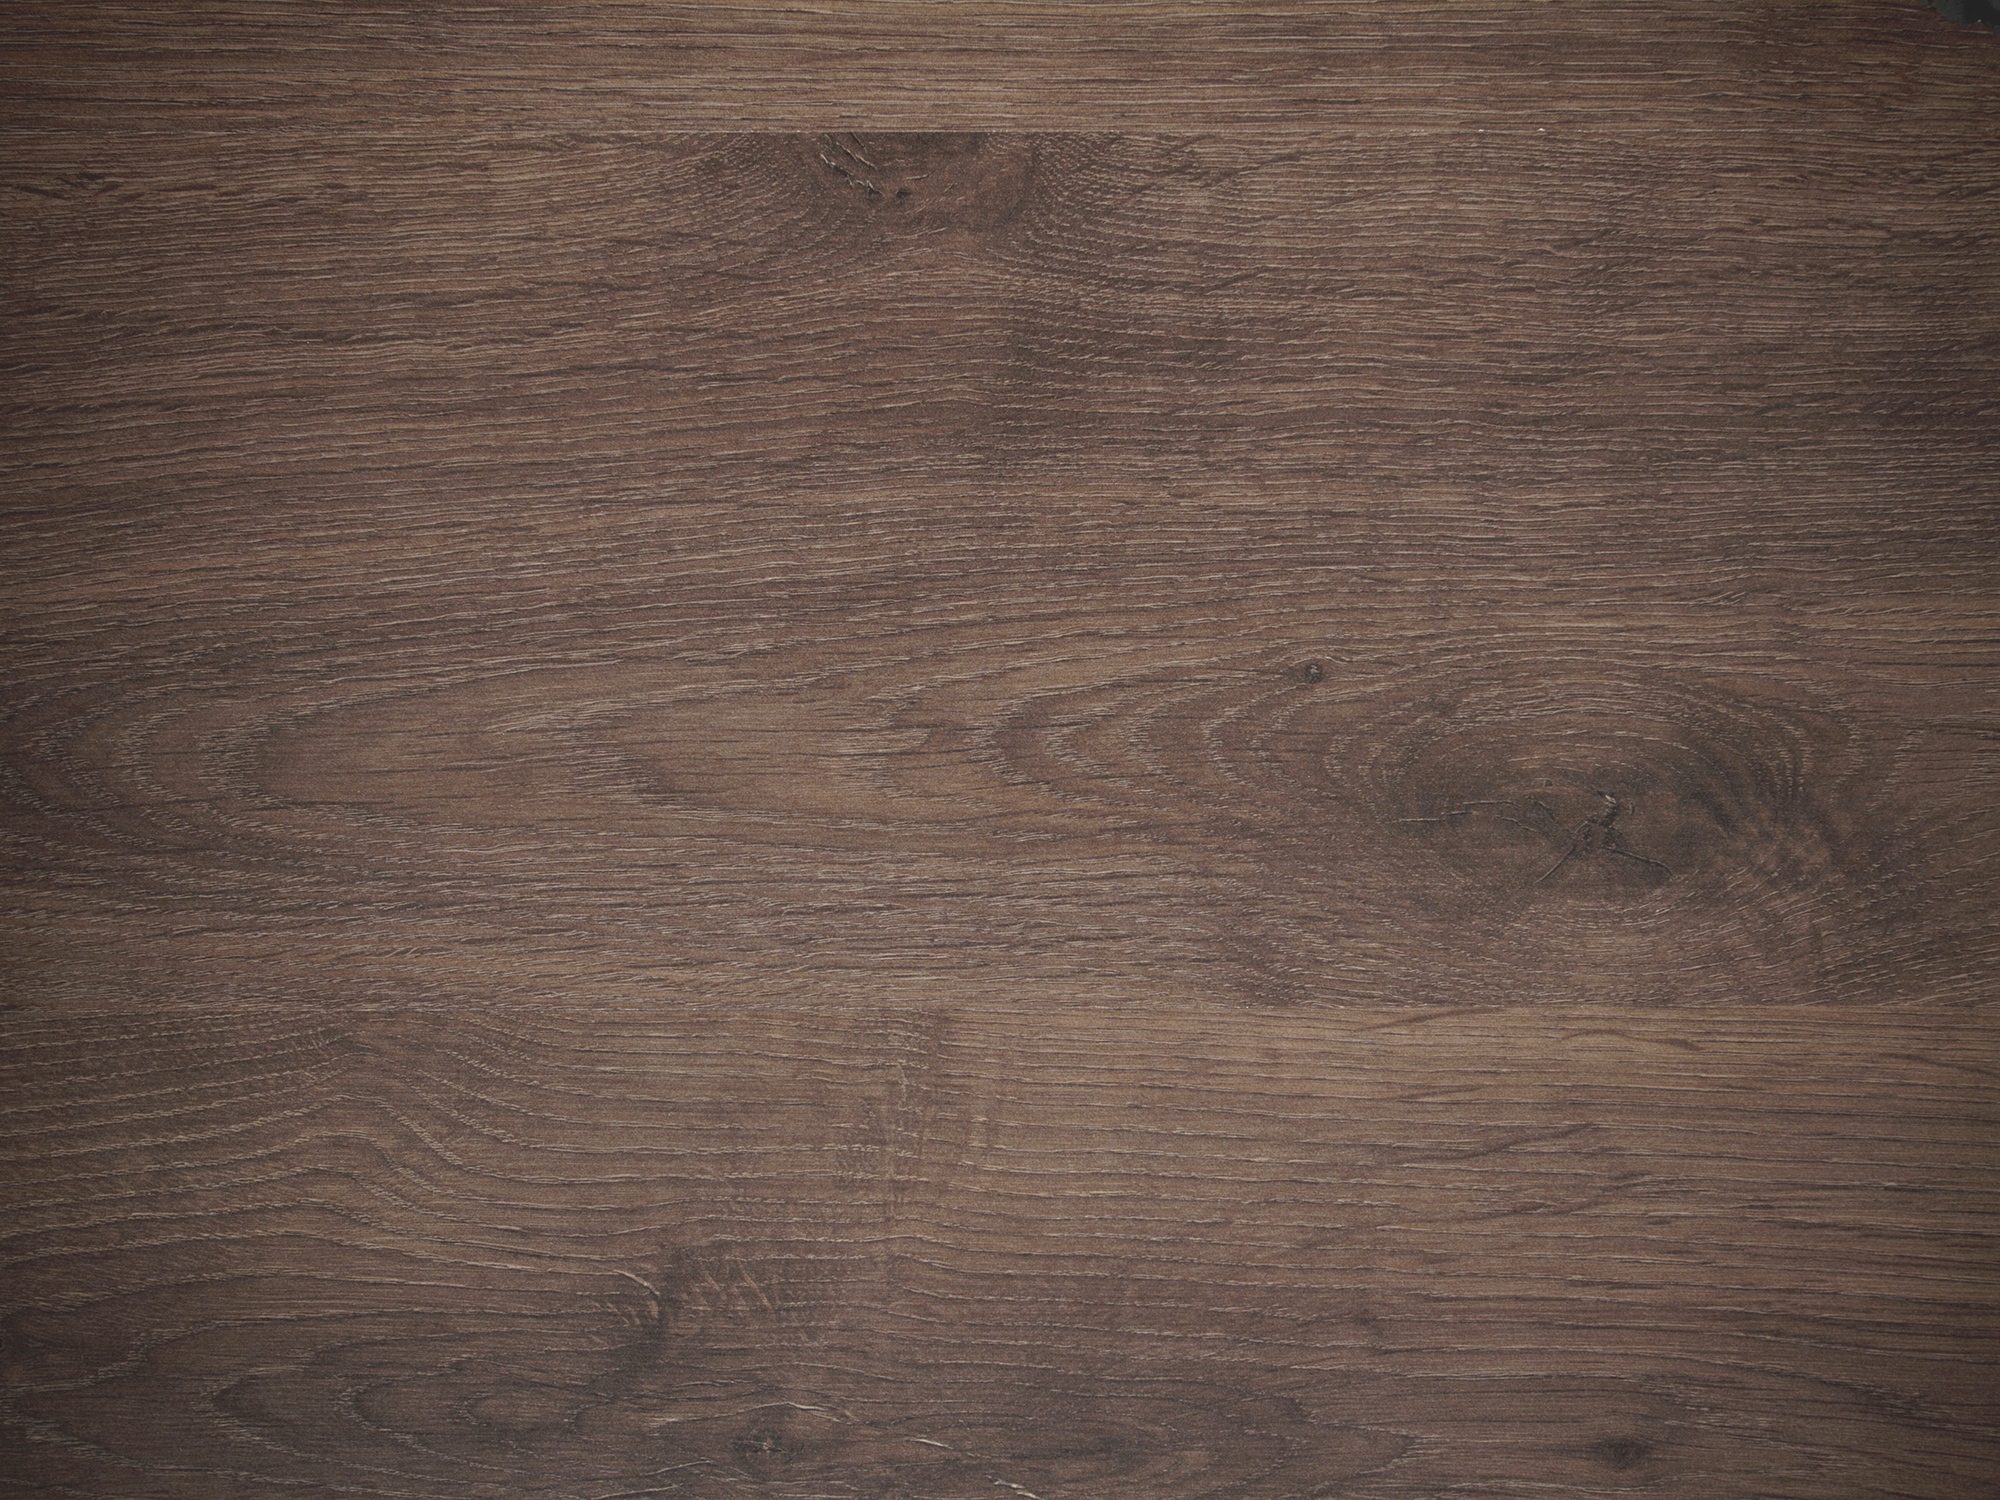 Natural wood texture. Dark oak.More wood textures and backgrounds: